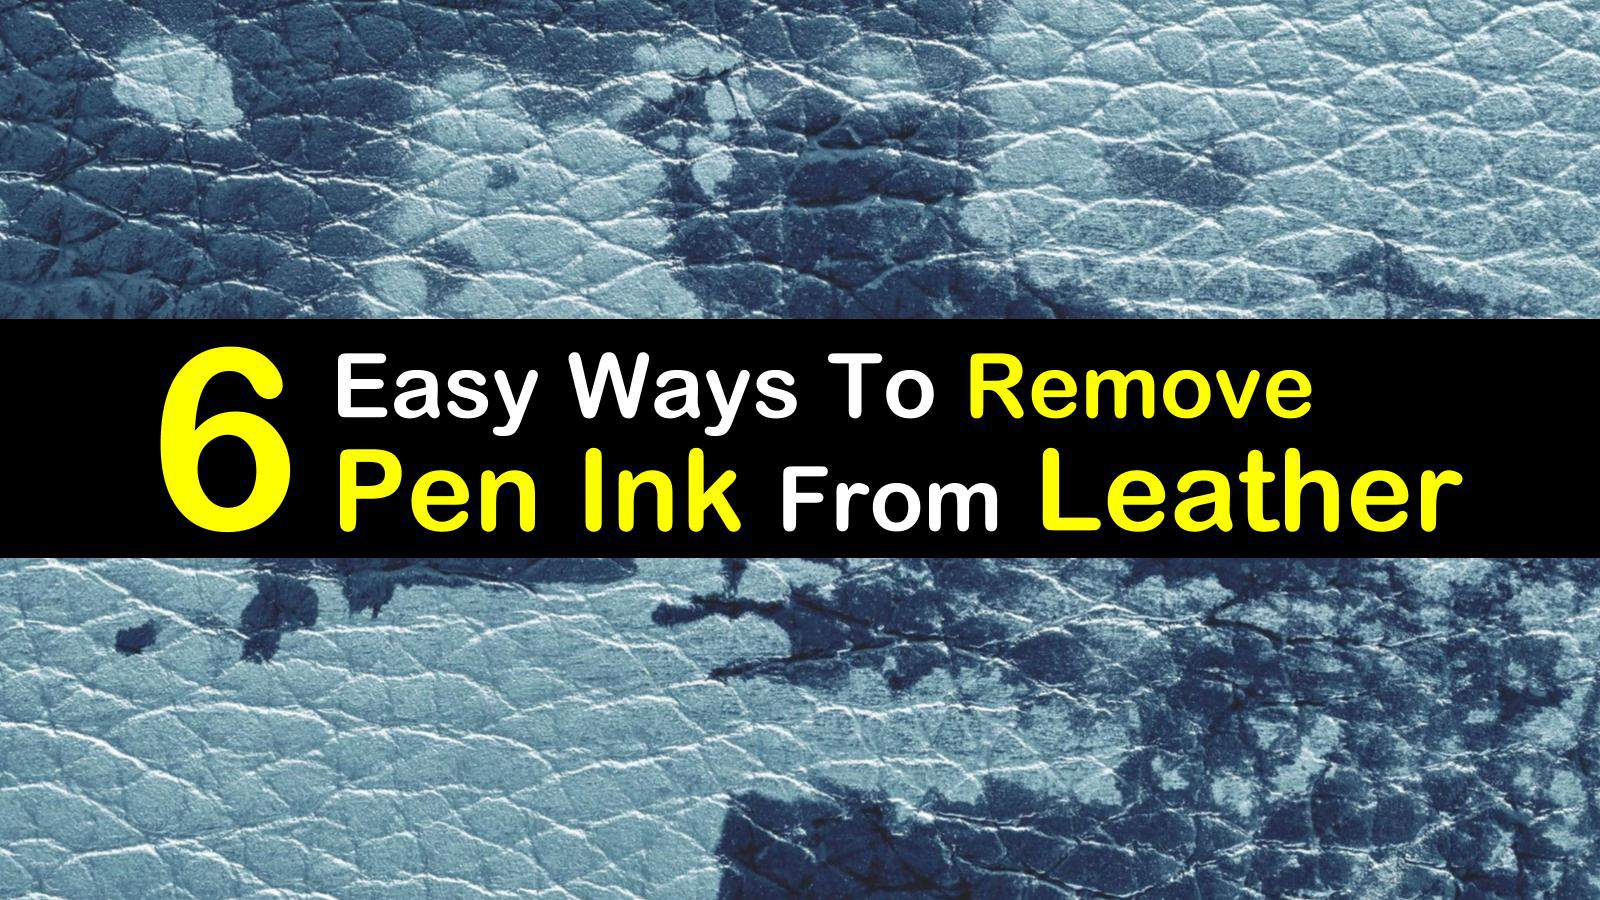 How To Remove Ink From Leather >> 6 Easy Ways To Remove Pen Ink From Leather